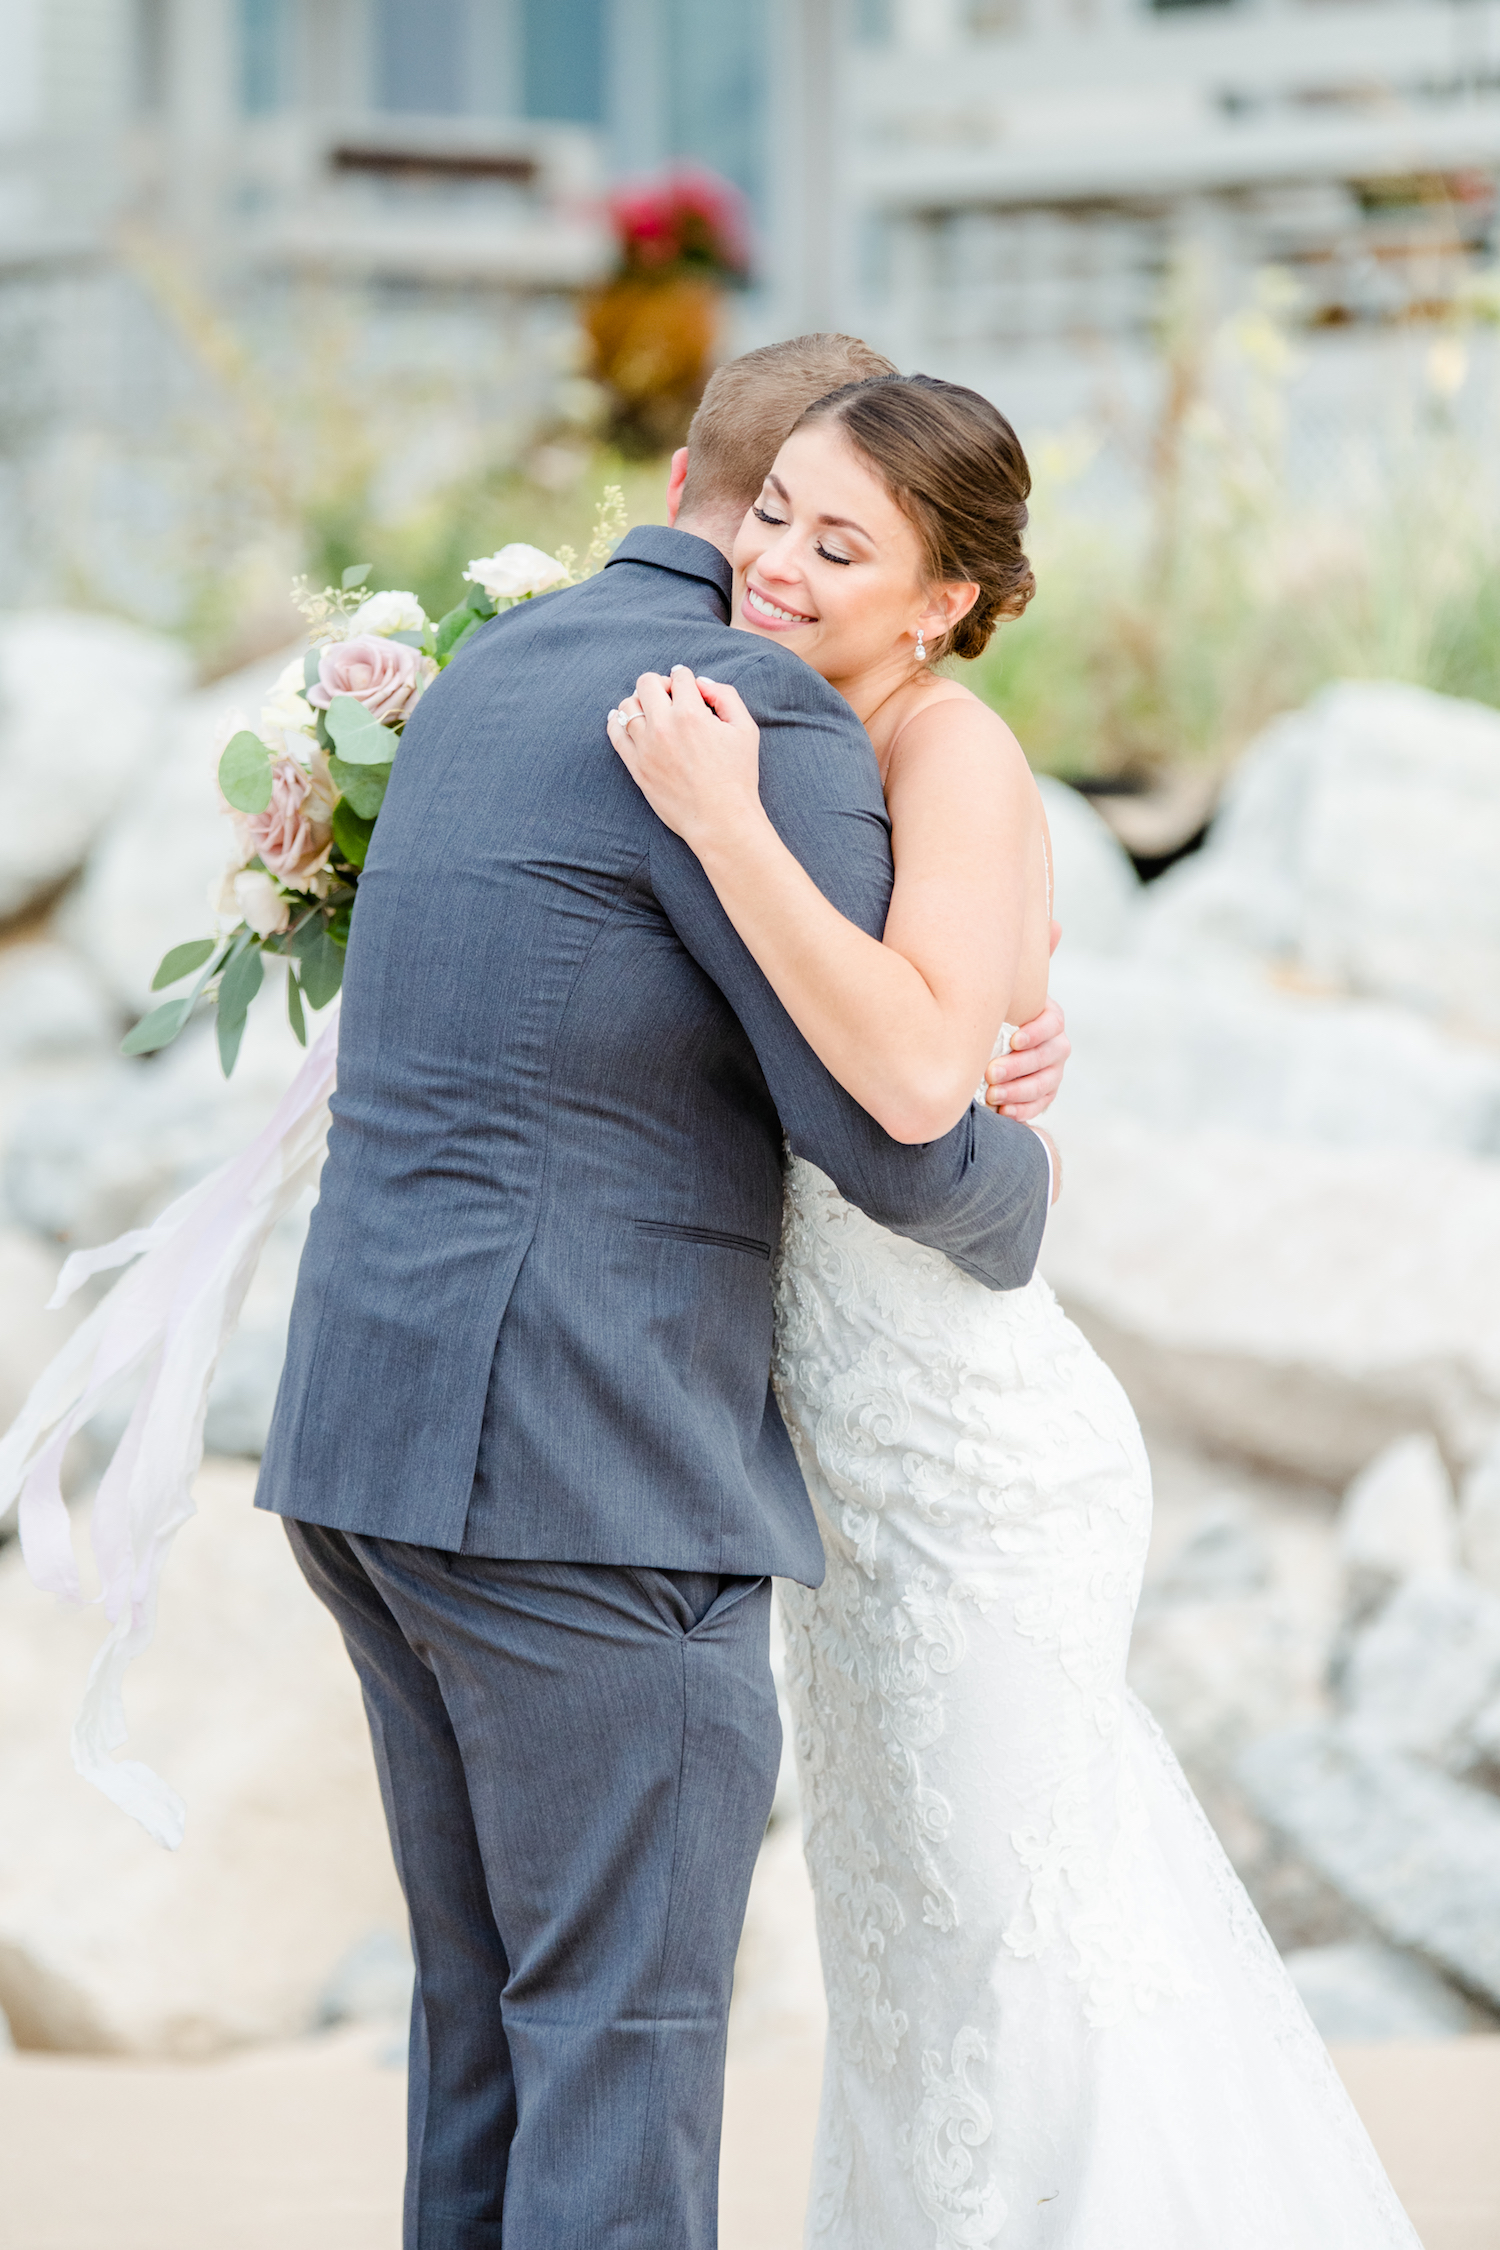 Bride and Groom hugging at their lakehouse wedding